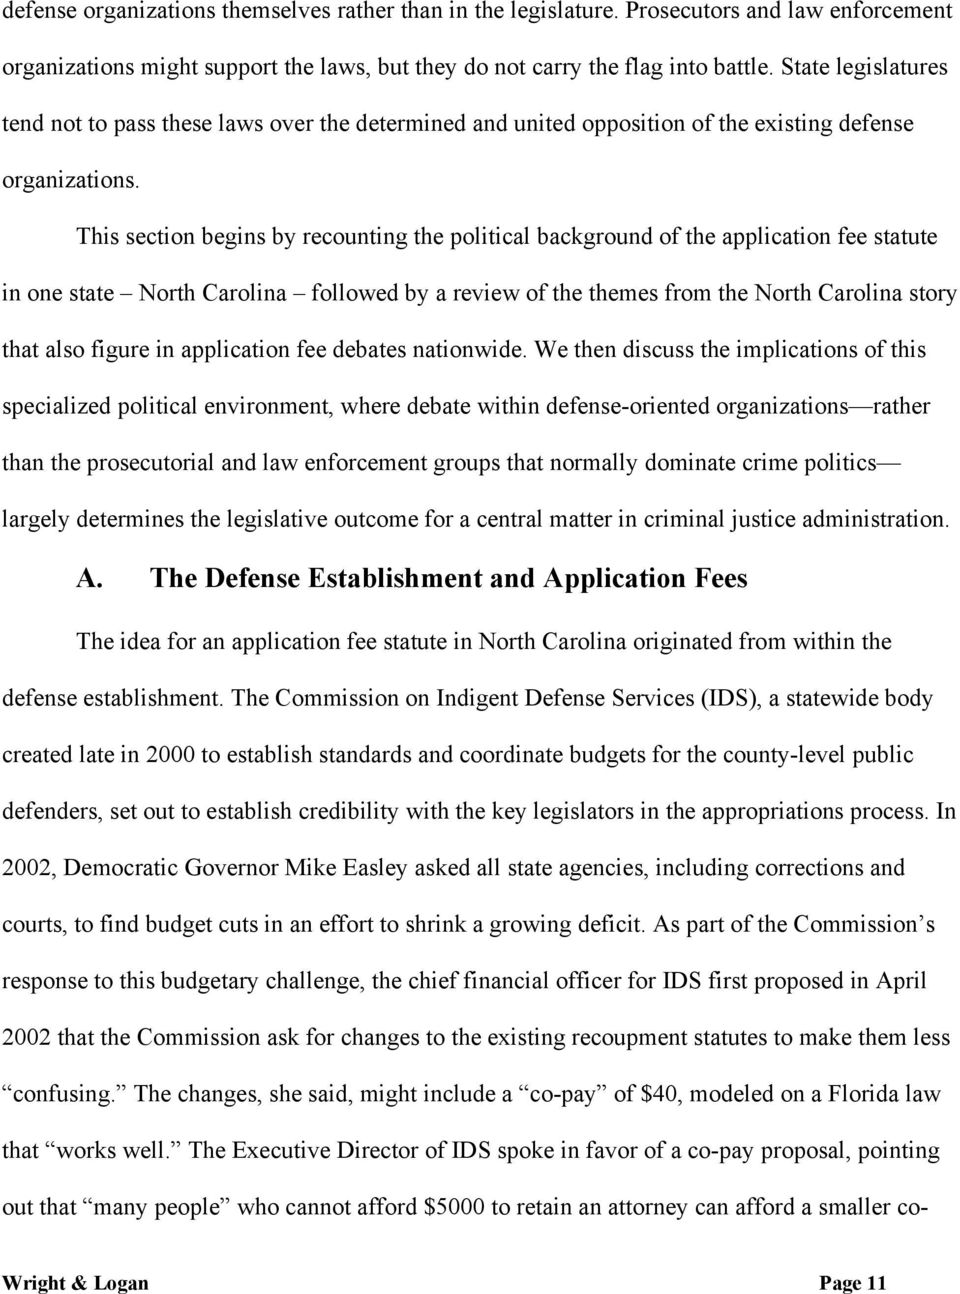 This section begins by recounting the political background of the application fee statute in one state North Carolina followed by a review of the themes from the North Carolina story that also figure